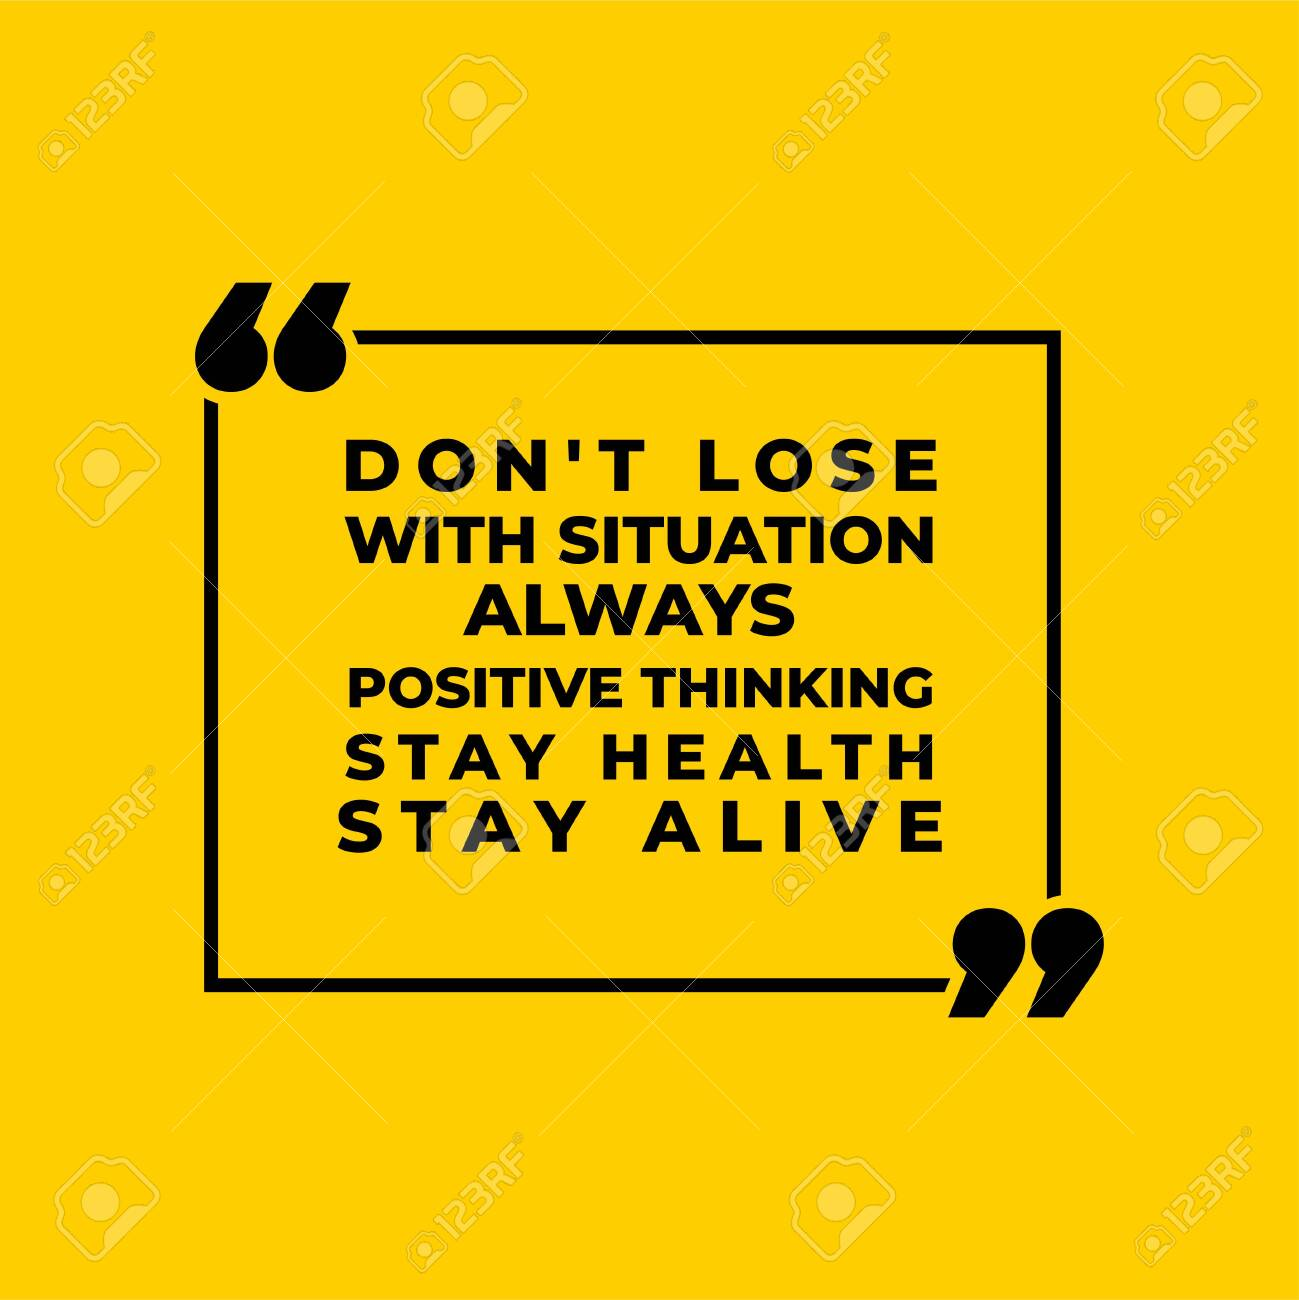 Don't Lose with situation, Always Positive Thinking, Stay Alive, So That We Are Always Optimistic - 149654122